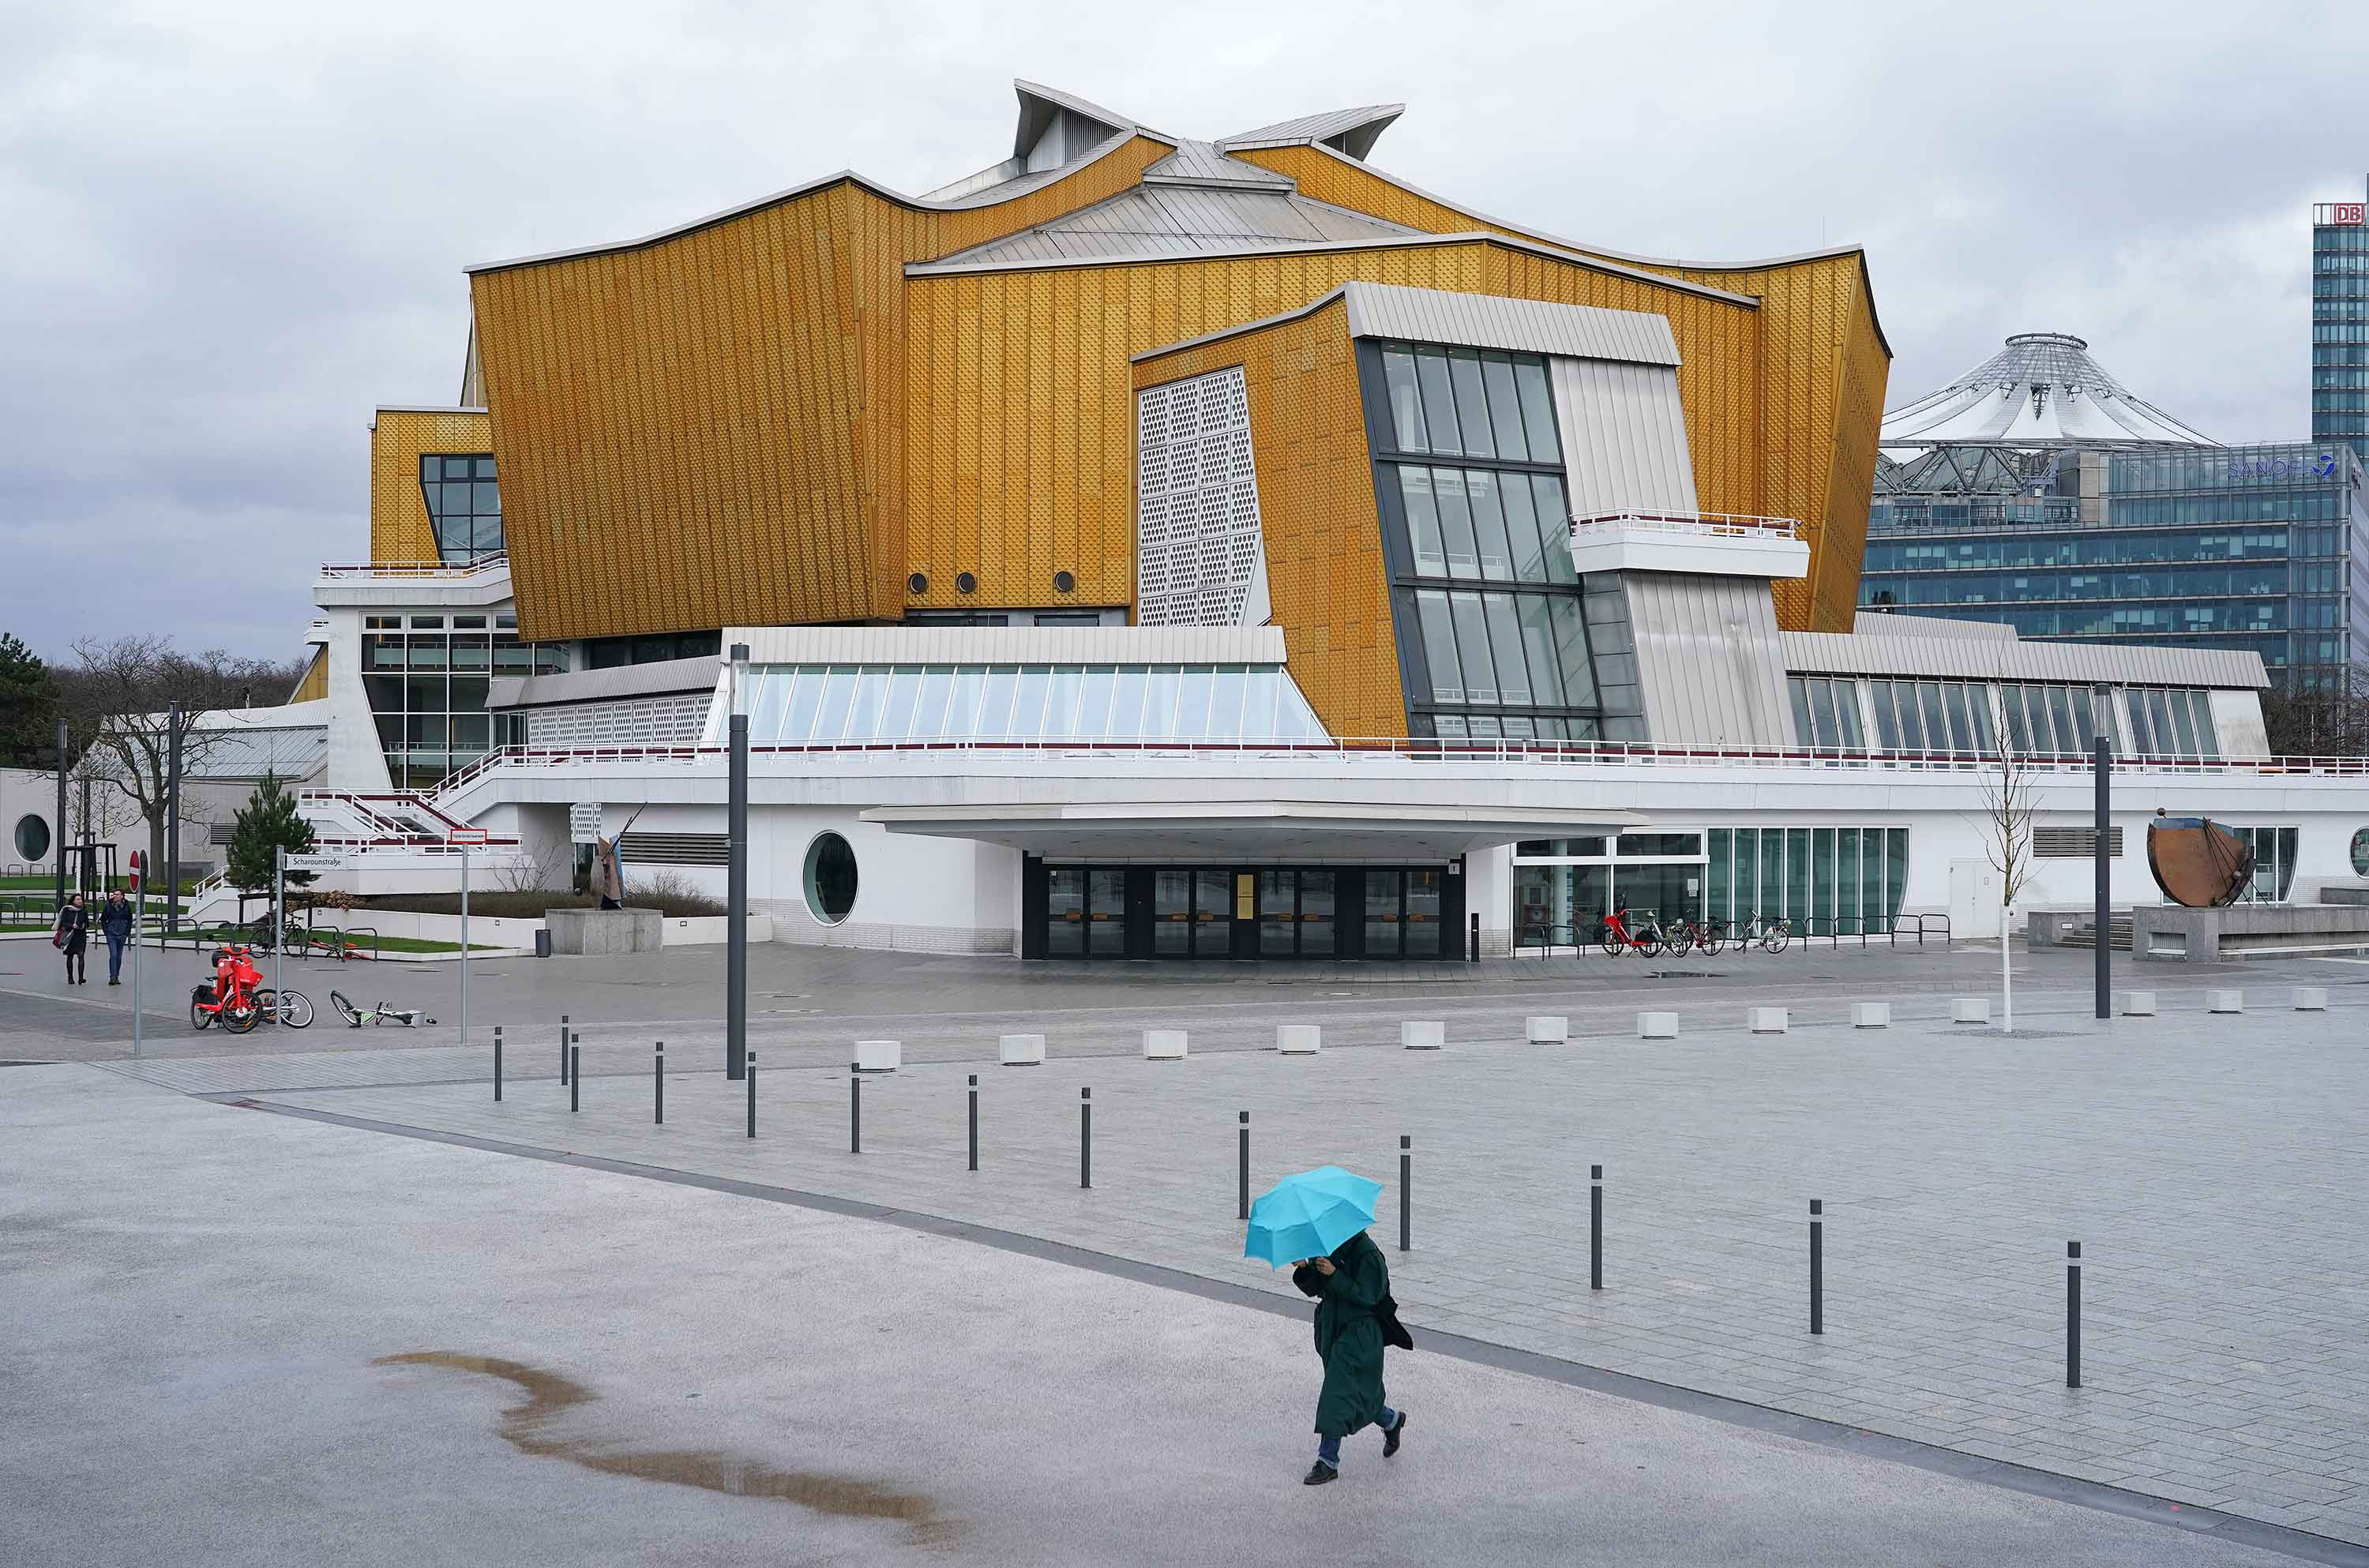 A person walks past the Berliner Philharmonie concert hall in Berlin, Germany, on Thursday.